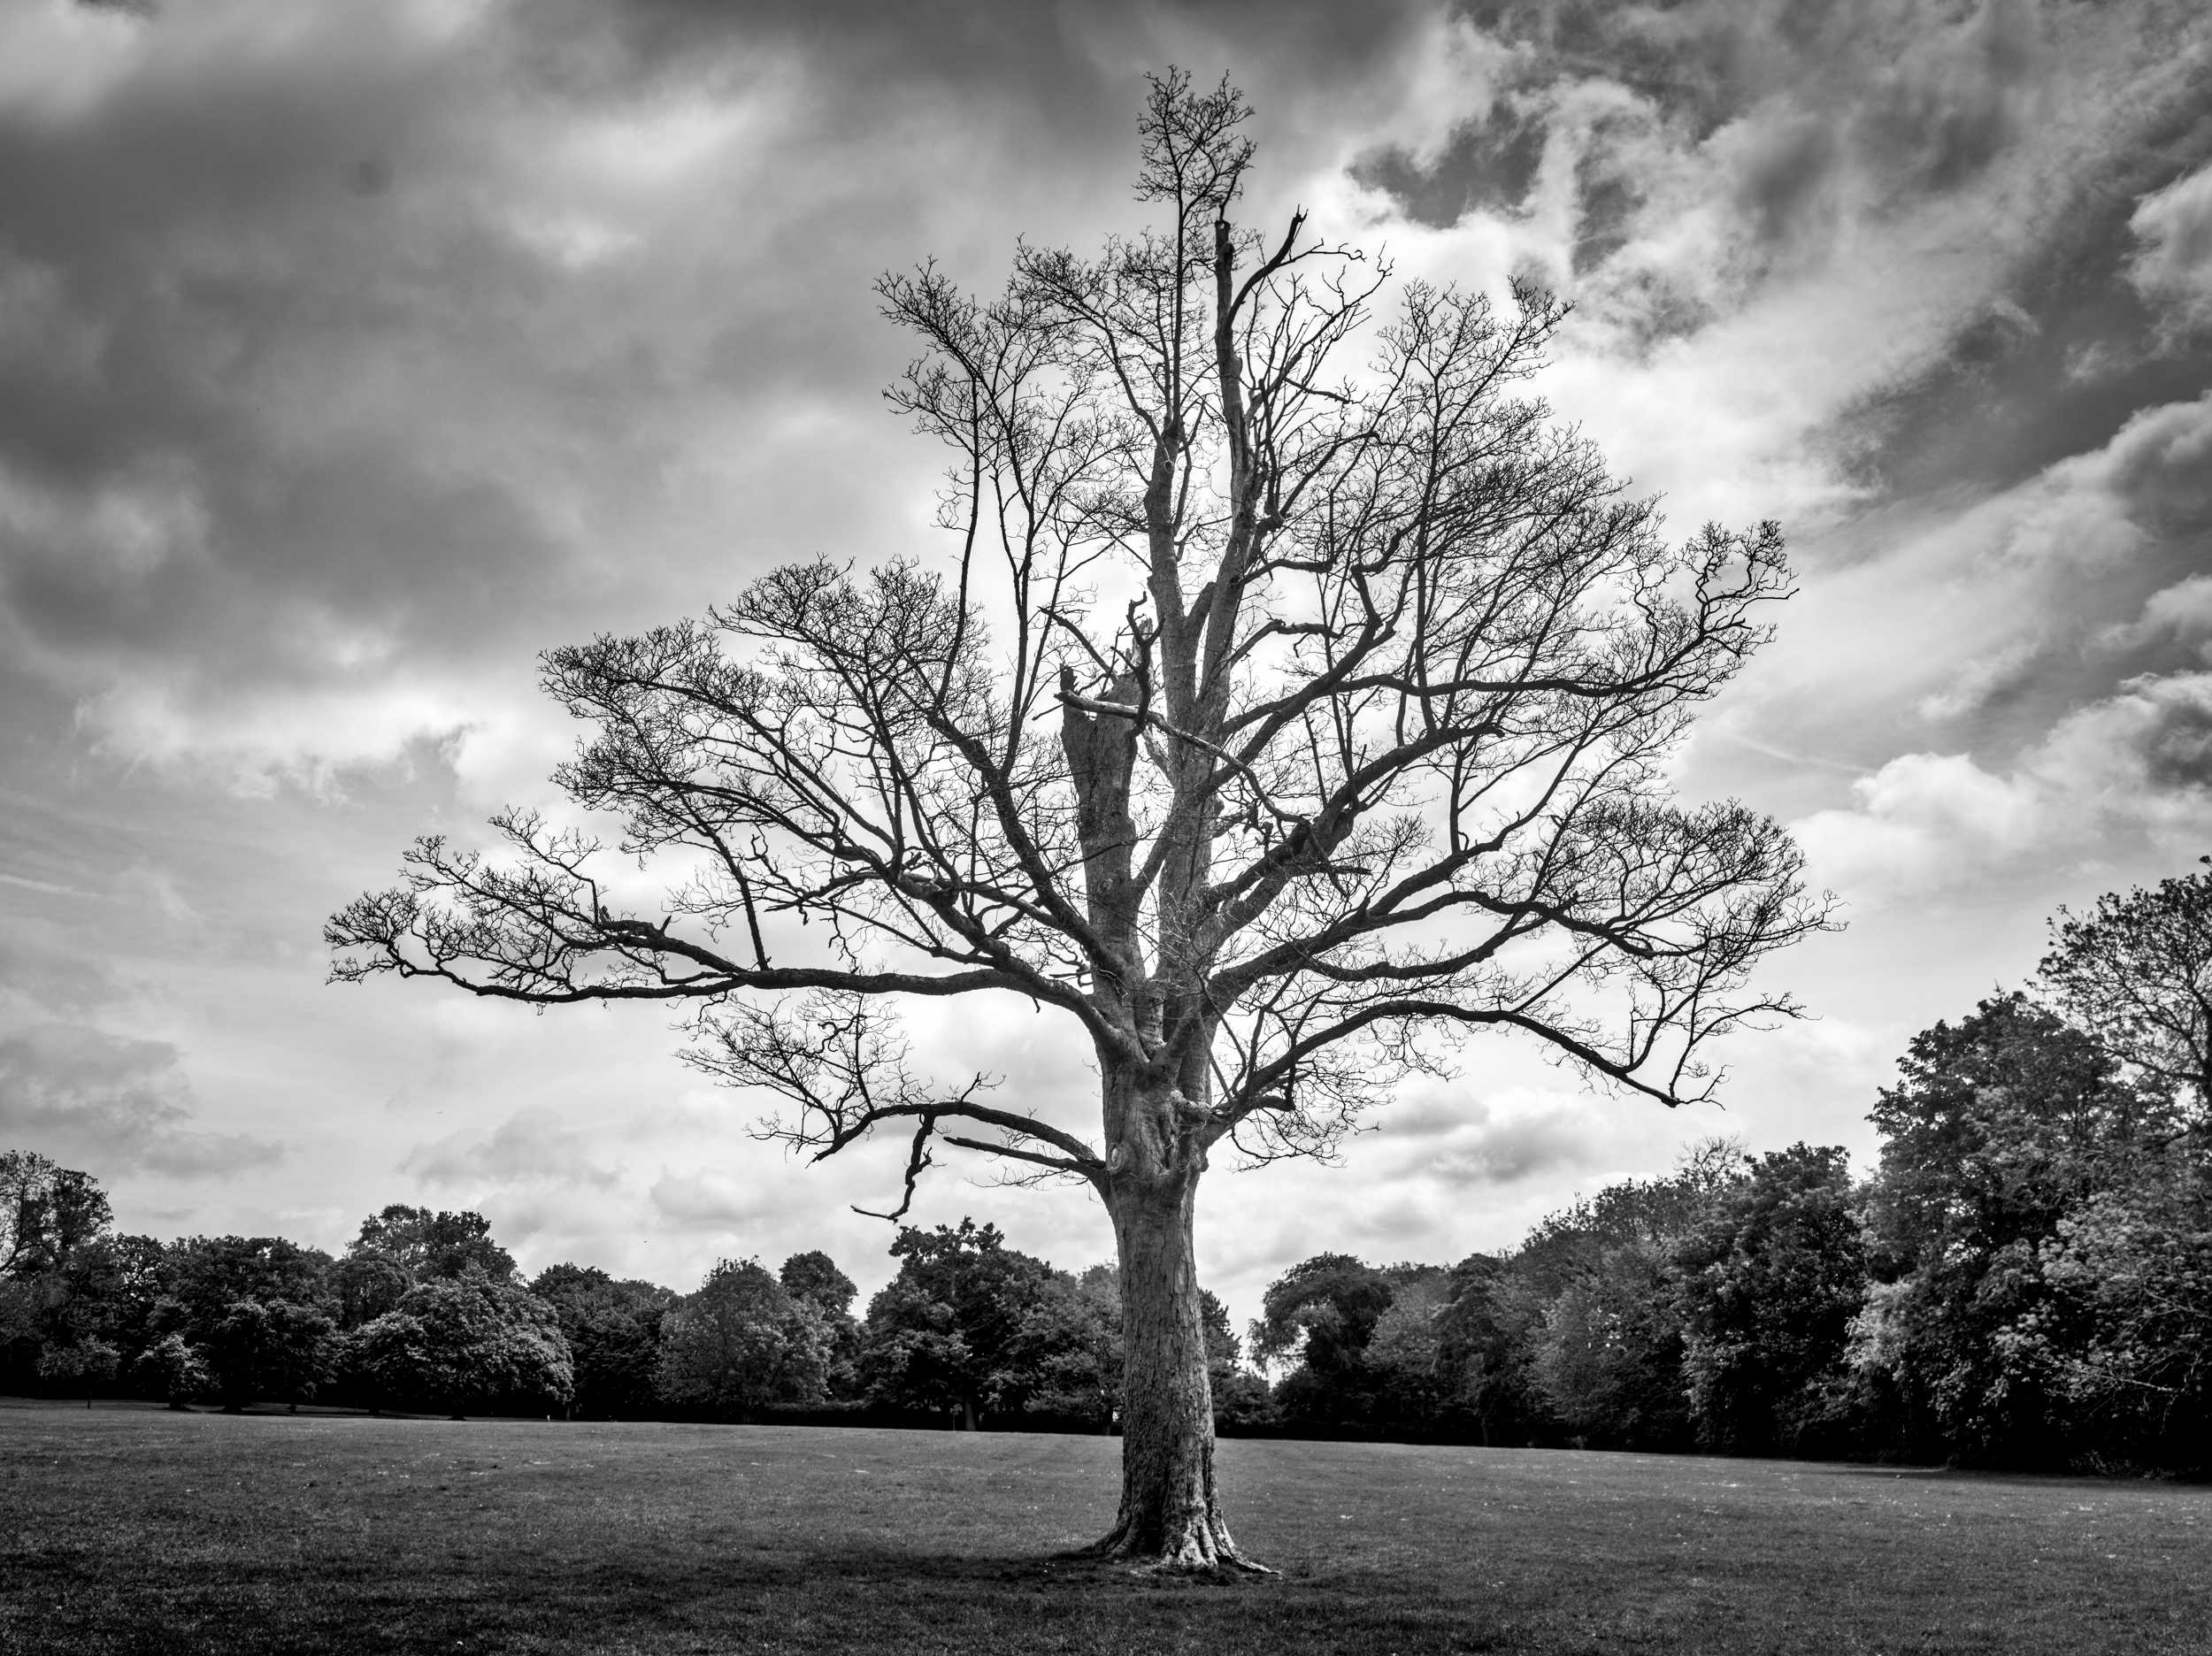 A Tree that was taken as a panorama (as my lens was not wide enough!) just down from the Abbey in St Albans (UK) just before going to the oldest Pub in Town! Fujifilm X-E1 with Olympus 50mm f/1.8 shot at 1/1000 sec f/4.0 ISO 200 with post done in Lightroom CC with additional work done in  Macphun Tonality Pro .